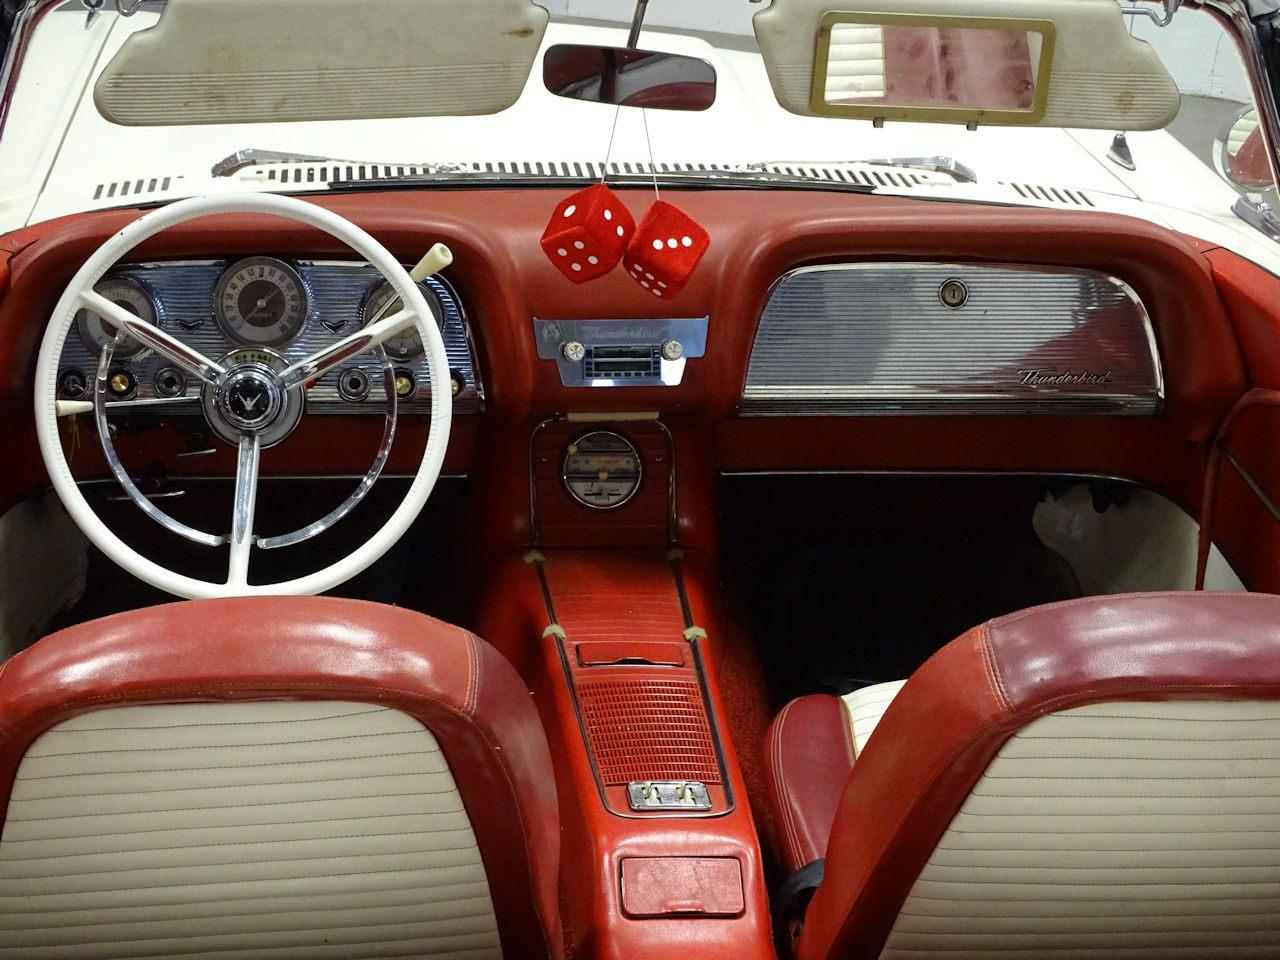 Large Picture of Classic '59 Ford Thunderbird located in Tennessee - $28,595.00 - MN60